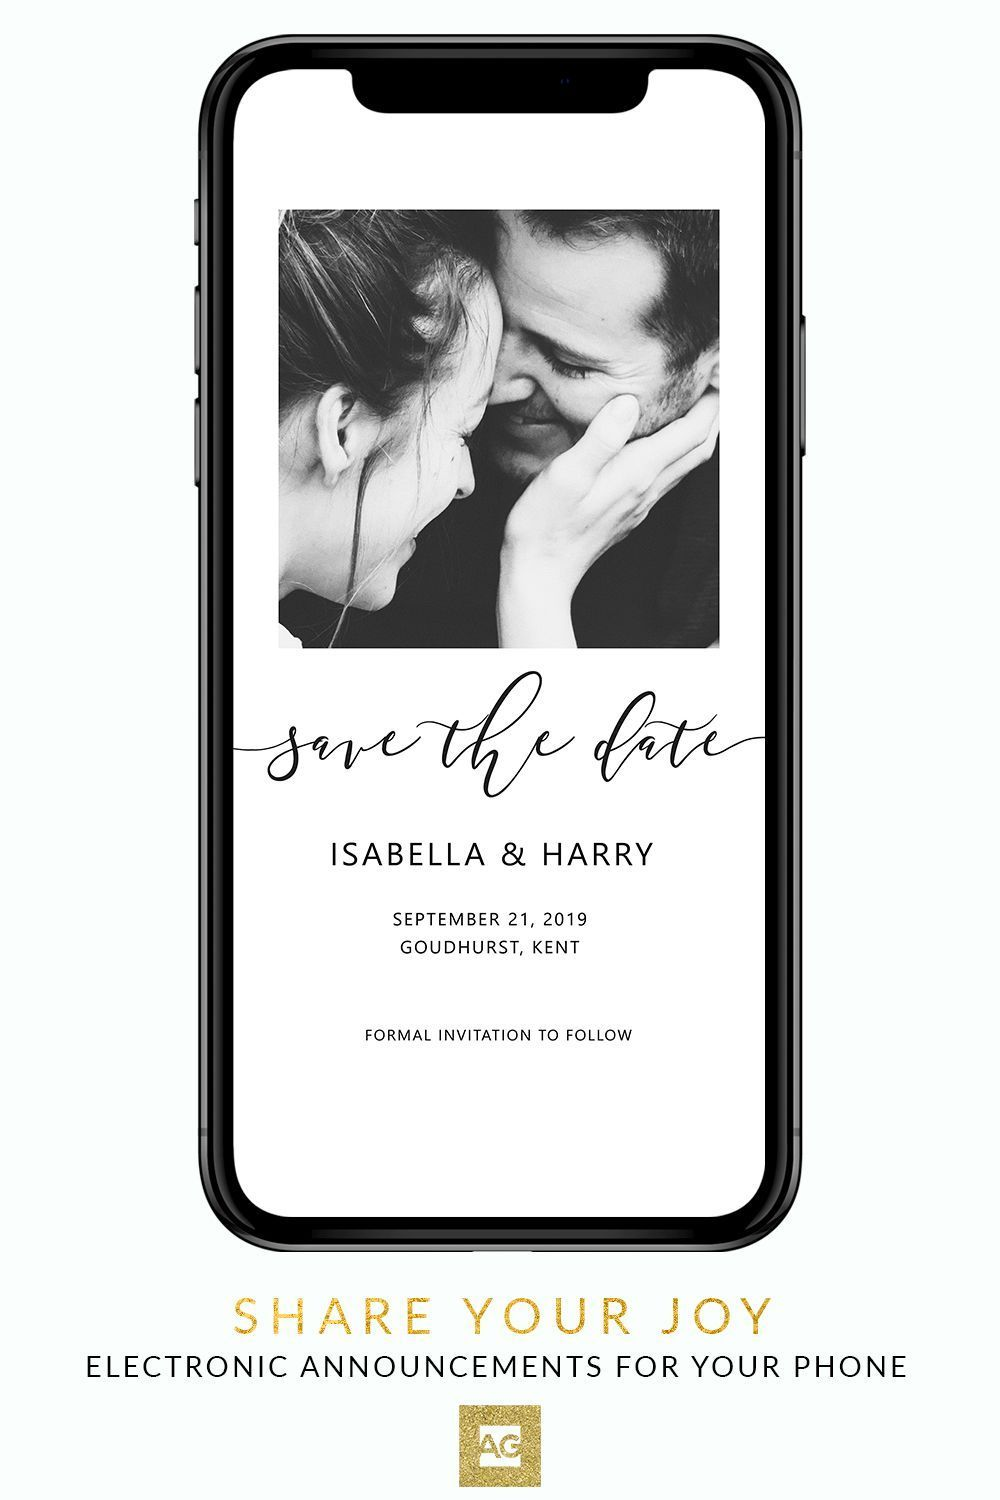 Electronic Save The Date Electronic Save The Date With Photo Add Your Ow Electronic Wedding Invitations Electronic Save The Date Digital Wedding Invitations